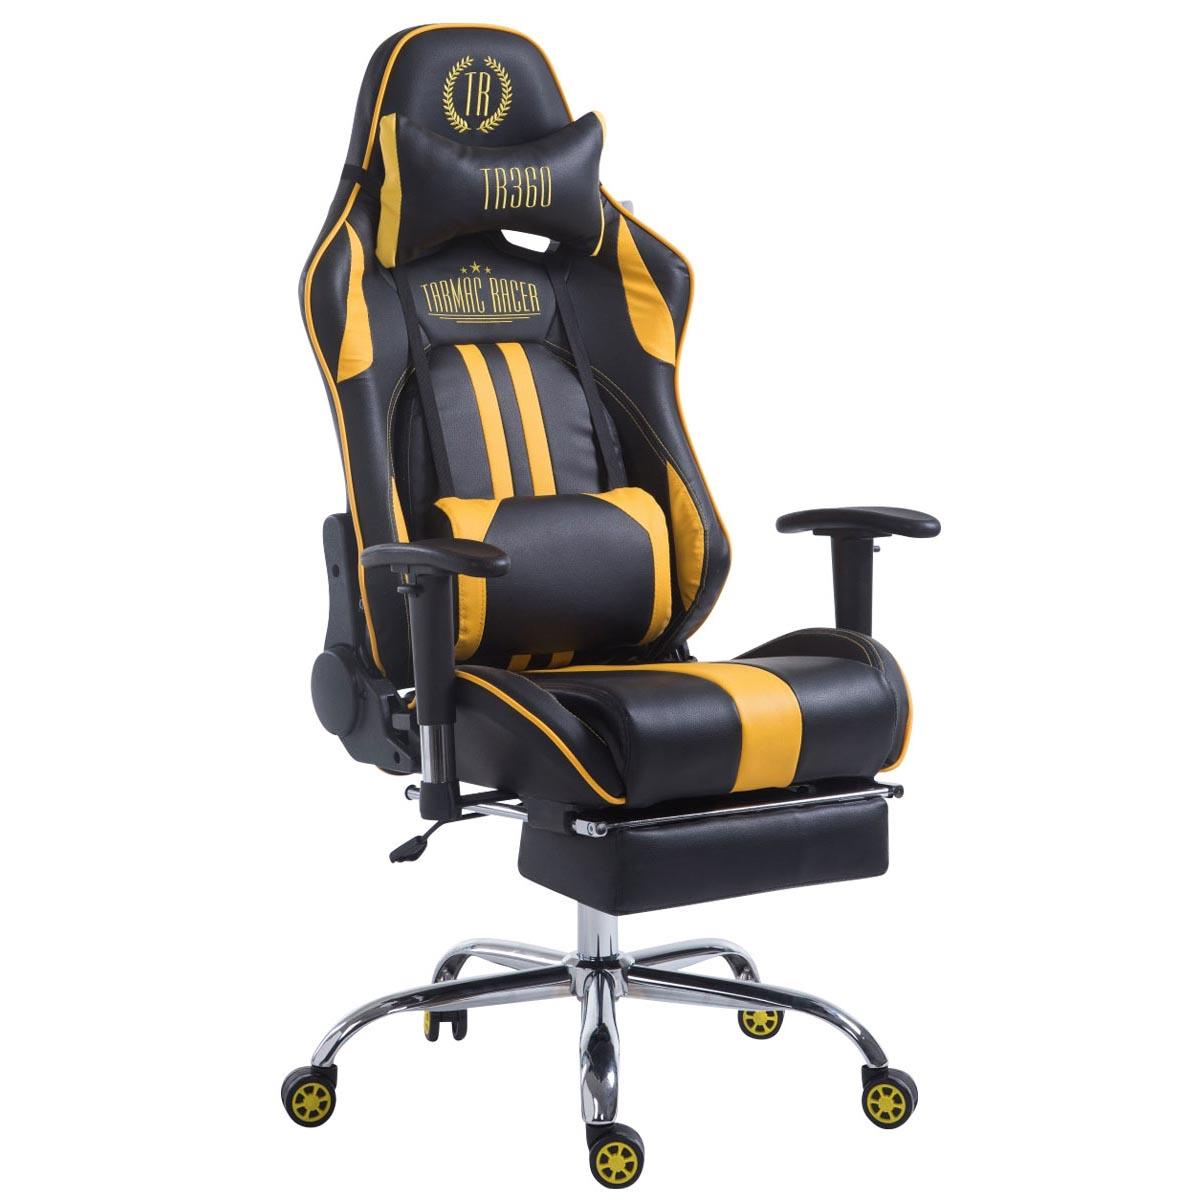 Silla Gaming LOGAN con Reposapiés, Respaldo Reclinable, Cojines Incluidos, Base de Metal, En Negro/Amarillo